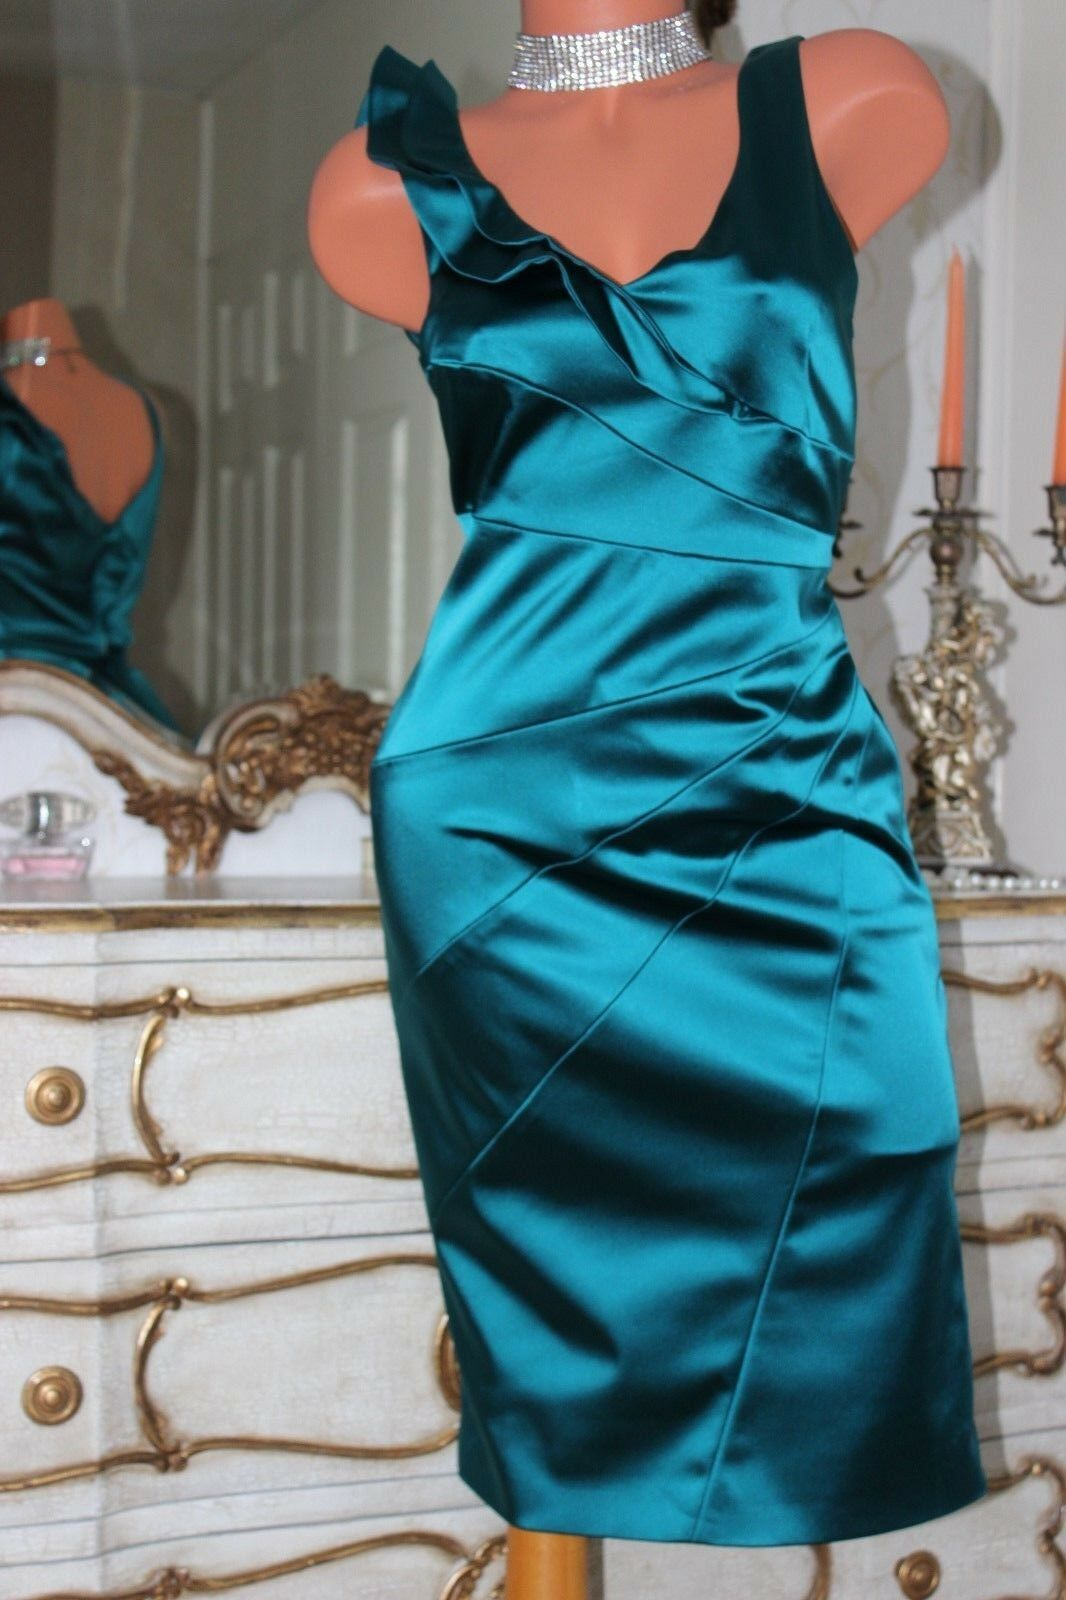 COAST Ladies Emerald Green Shiny Faux Satin Fully Lined Party Dress in Size 10